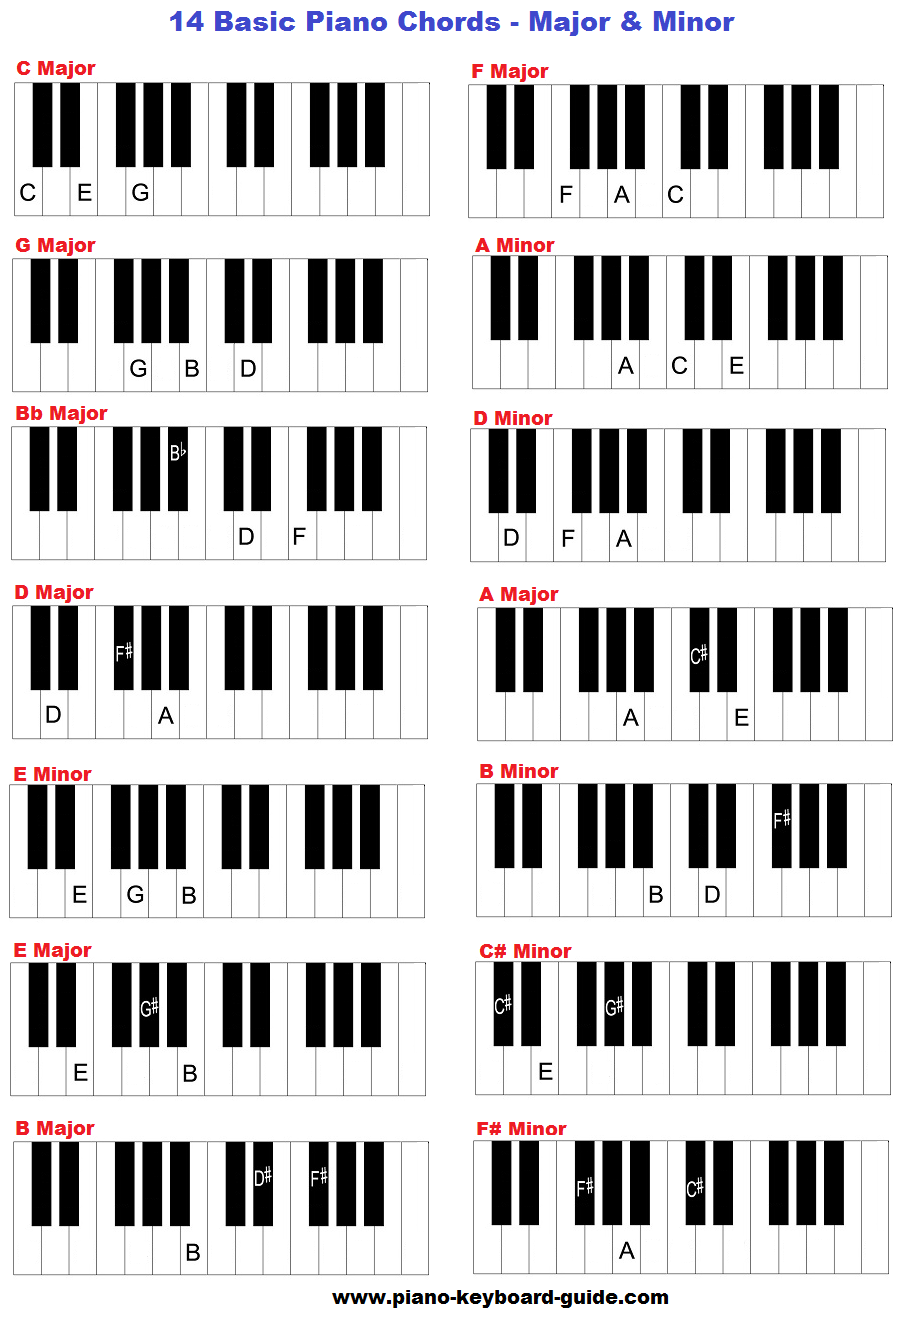 Learn basic piano chords and keys